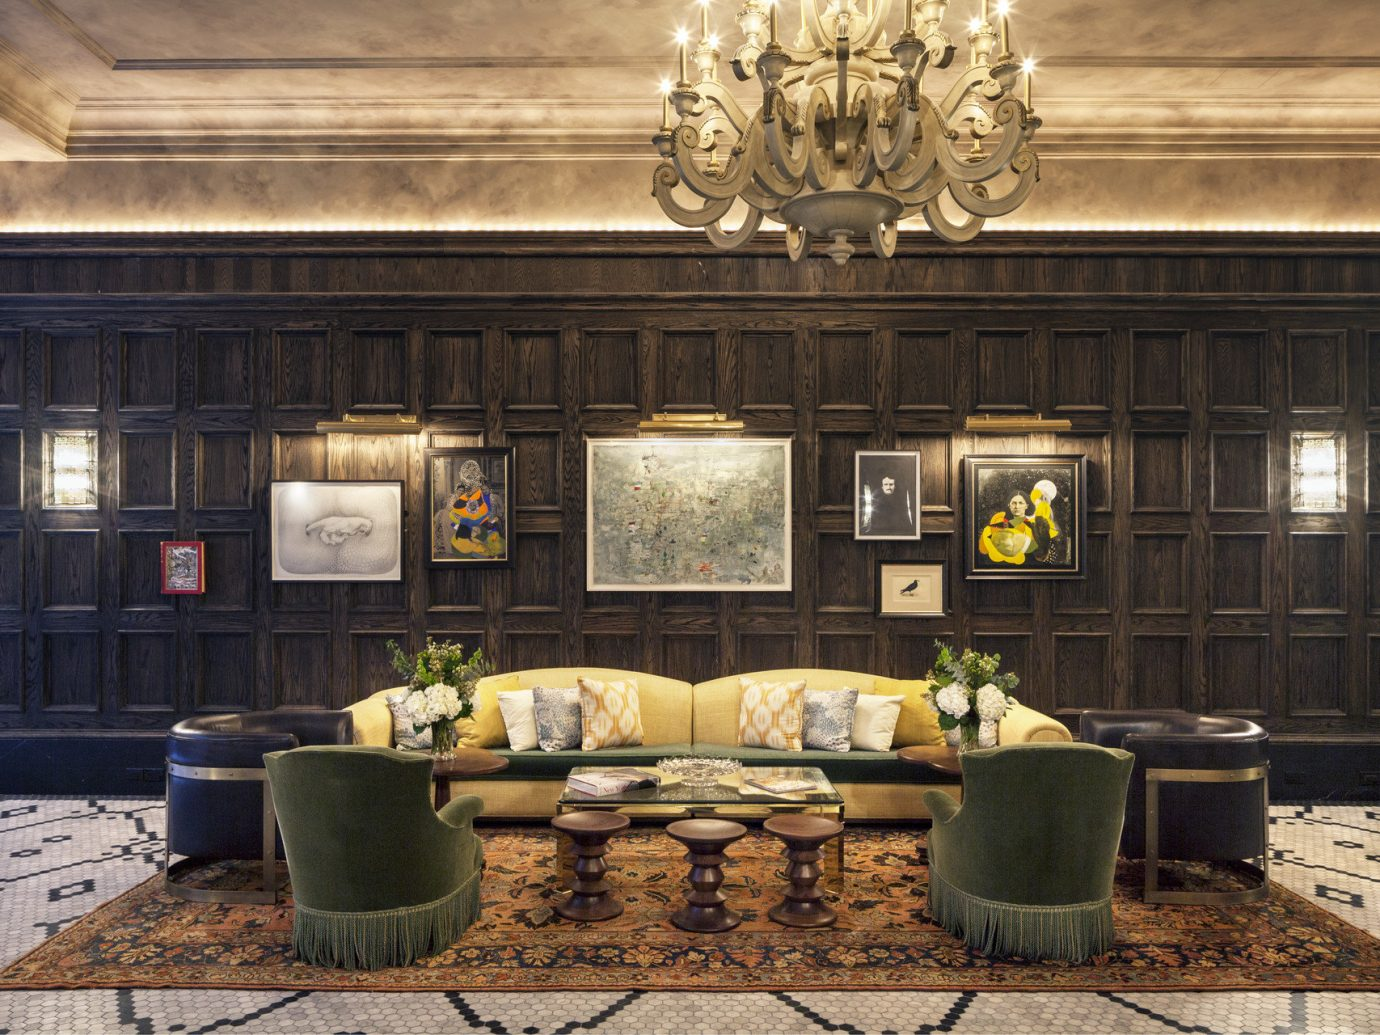 The Beekman, a Thompson Hotel Hotels NYC room living room Lobby estate interior design home lighting mansion Design